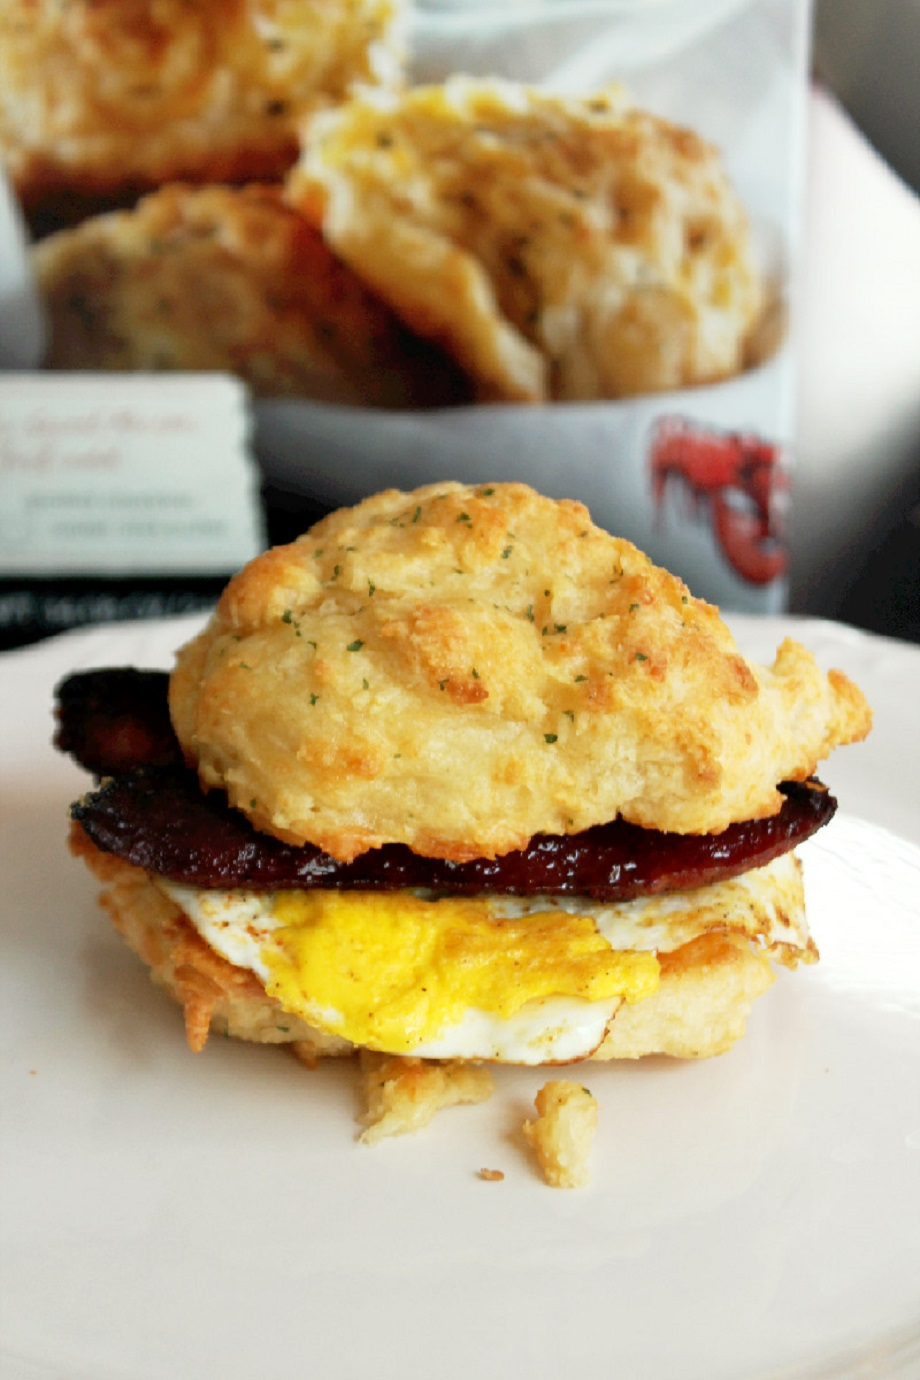 Sausage Egg Cheese Biscuit with Louisiana Smoked Sausage